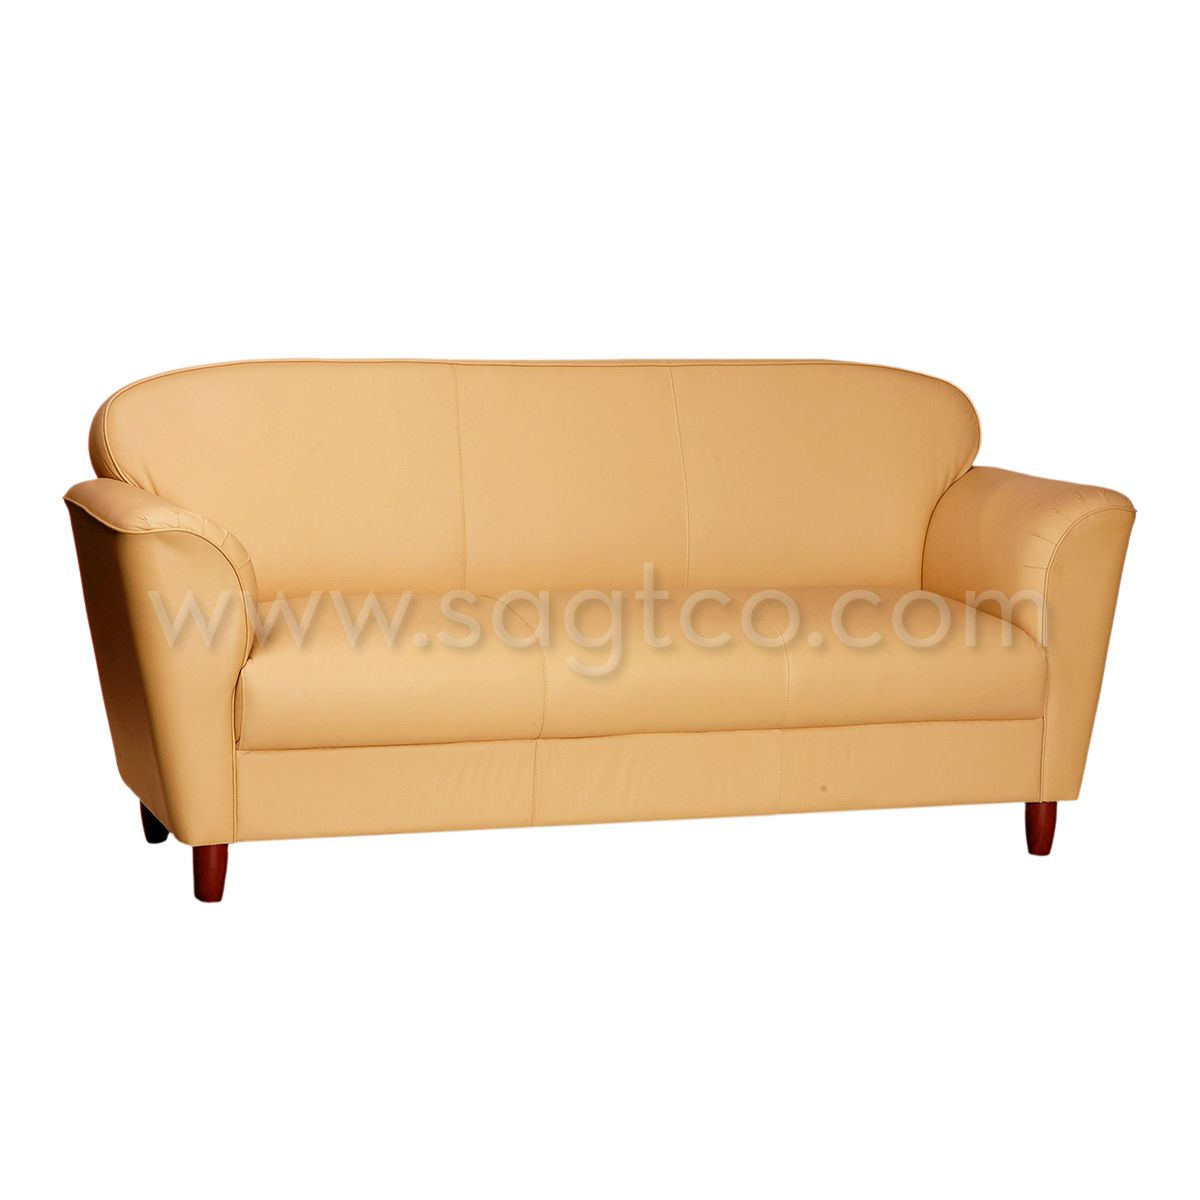 Sofa Bed Abu Dhabi Google Sagtco Office Furniture Company Dubai Abu Dhabi And